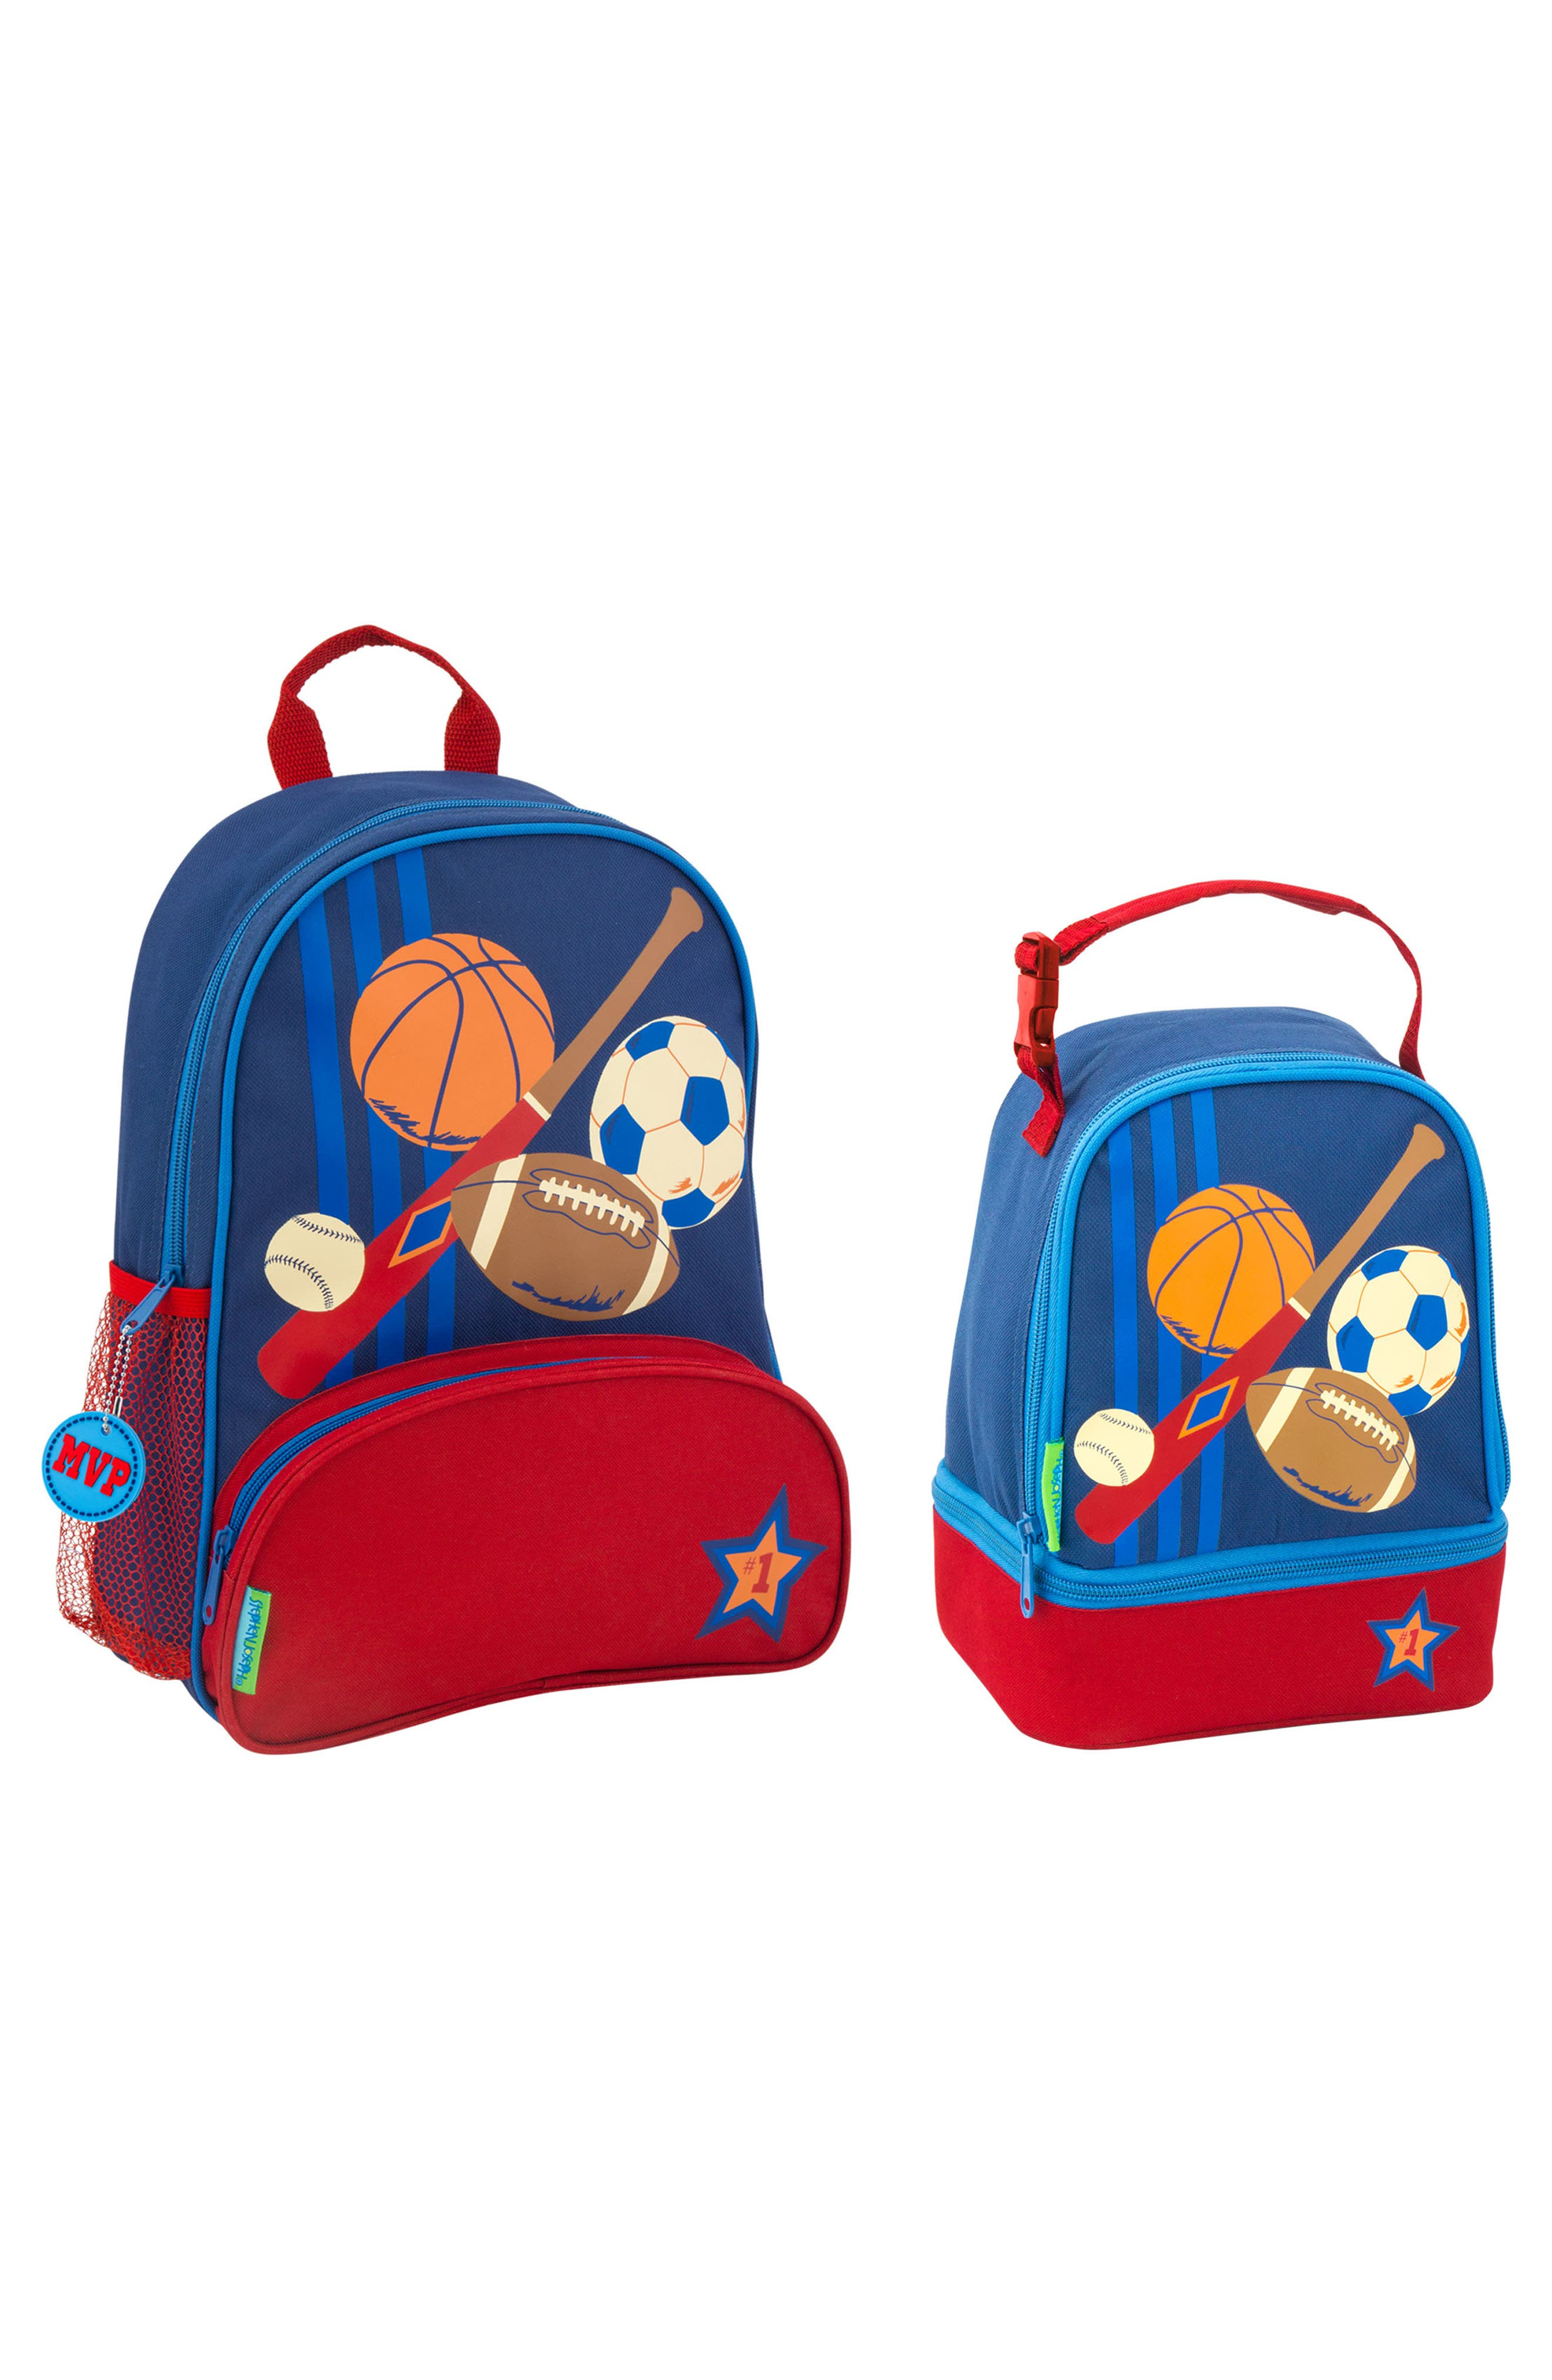 Sports Sidekick Backpack & Lunch Pal,                             Main thumbnail 1, color,                             SPORTS